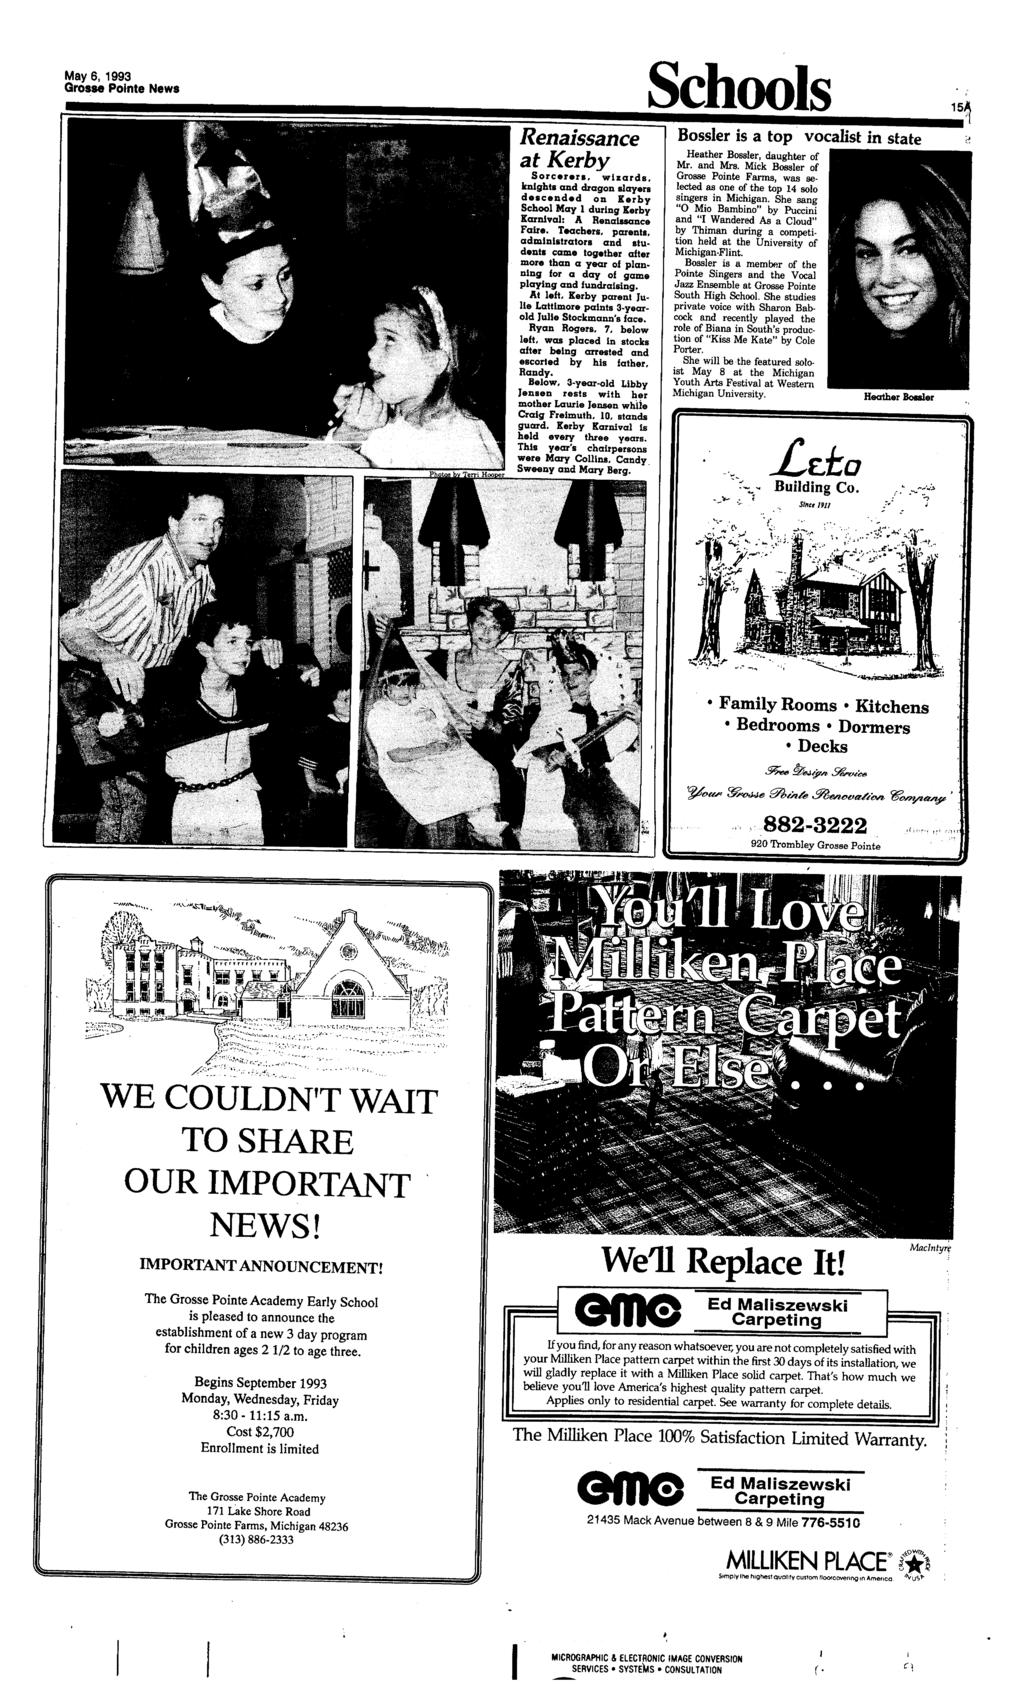 Grosse Pointe News Vol 54 No Pdf Bq Wkbk Grade 3 Ages 8 9 May 61993 Renaissance At Kerby Sorceren Wizards Knights And